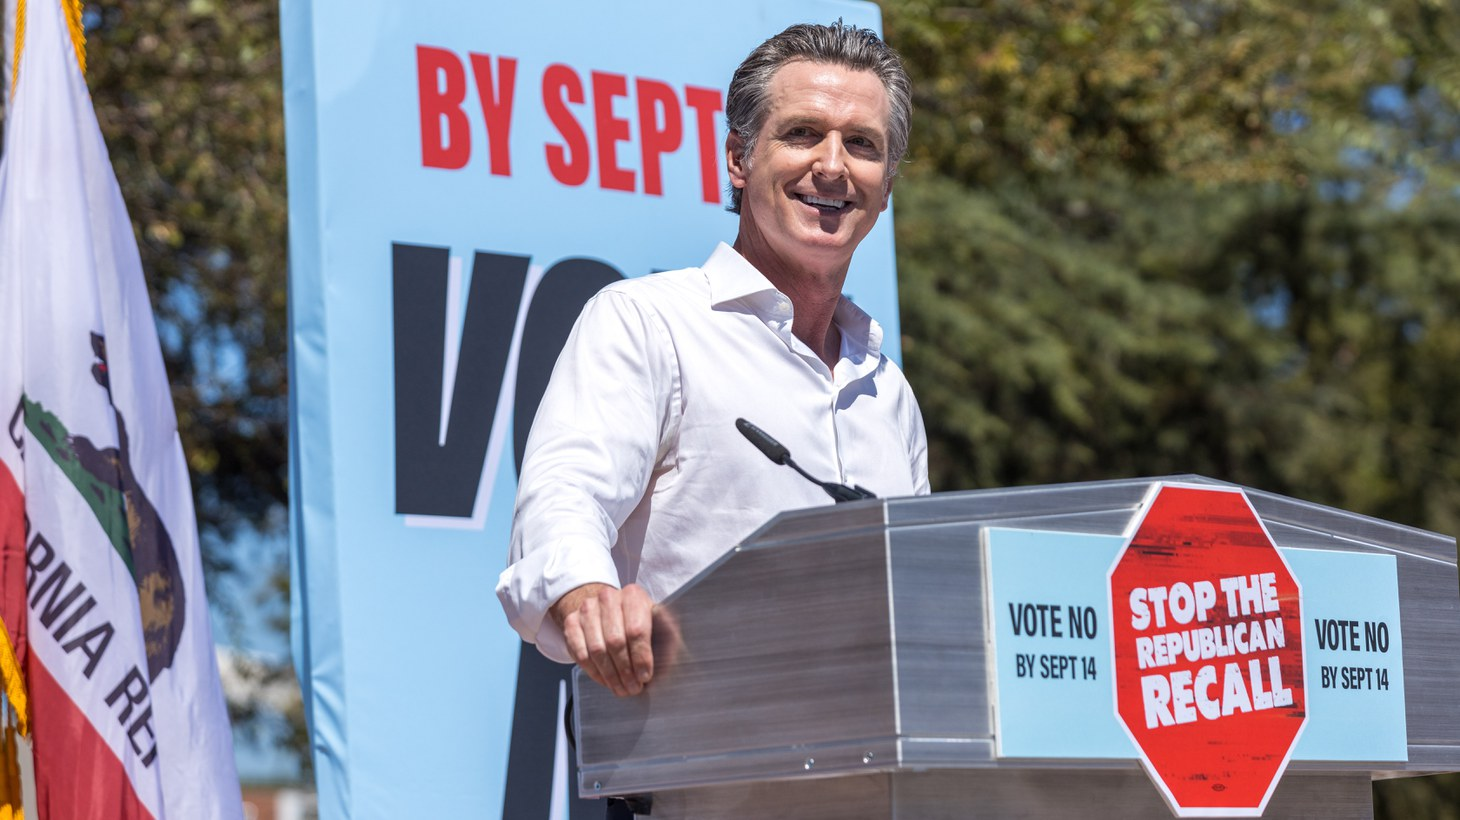 Governor Newsom's effort to fight the recall attempt has succeeded, despite its hefty price tag of some $300 million. But columnist Joe Matthews says it's money well spent, and democracy shouldn't be cheaper.